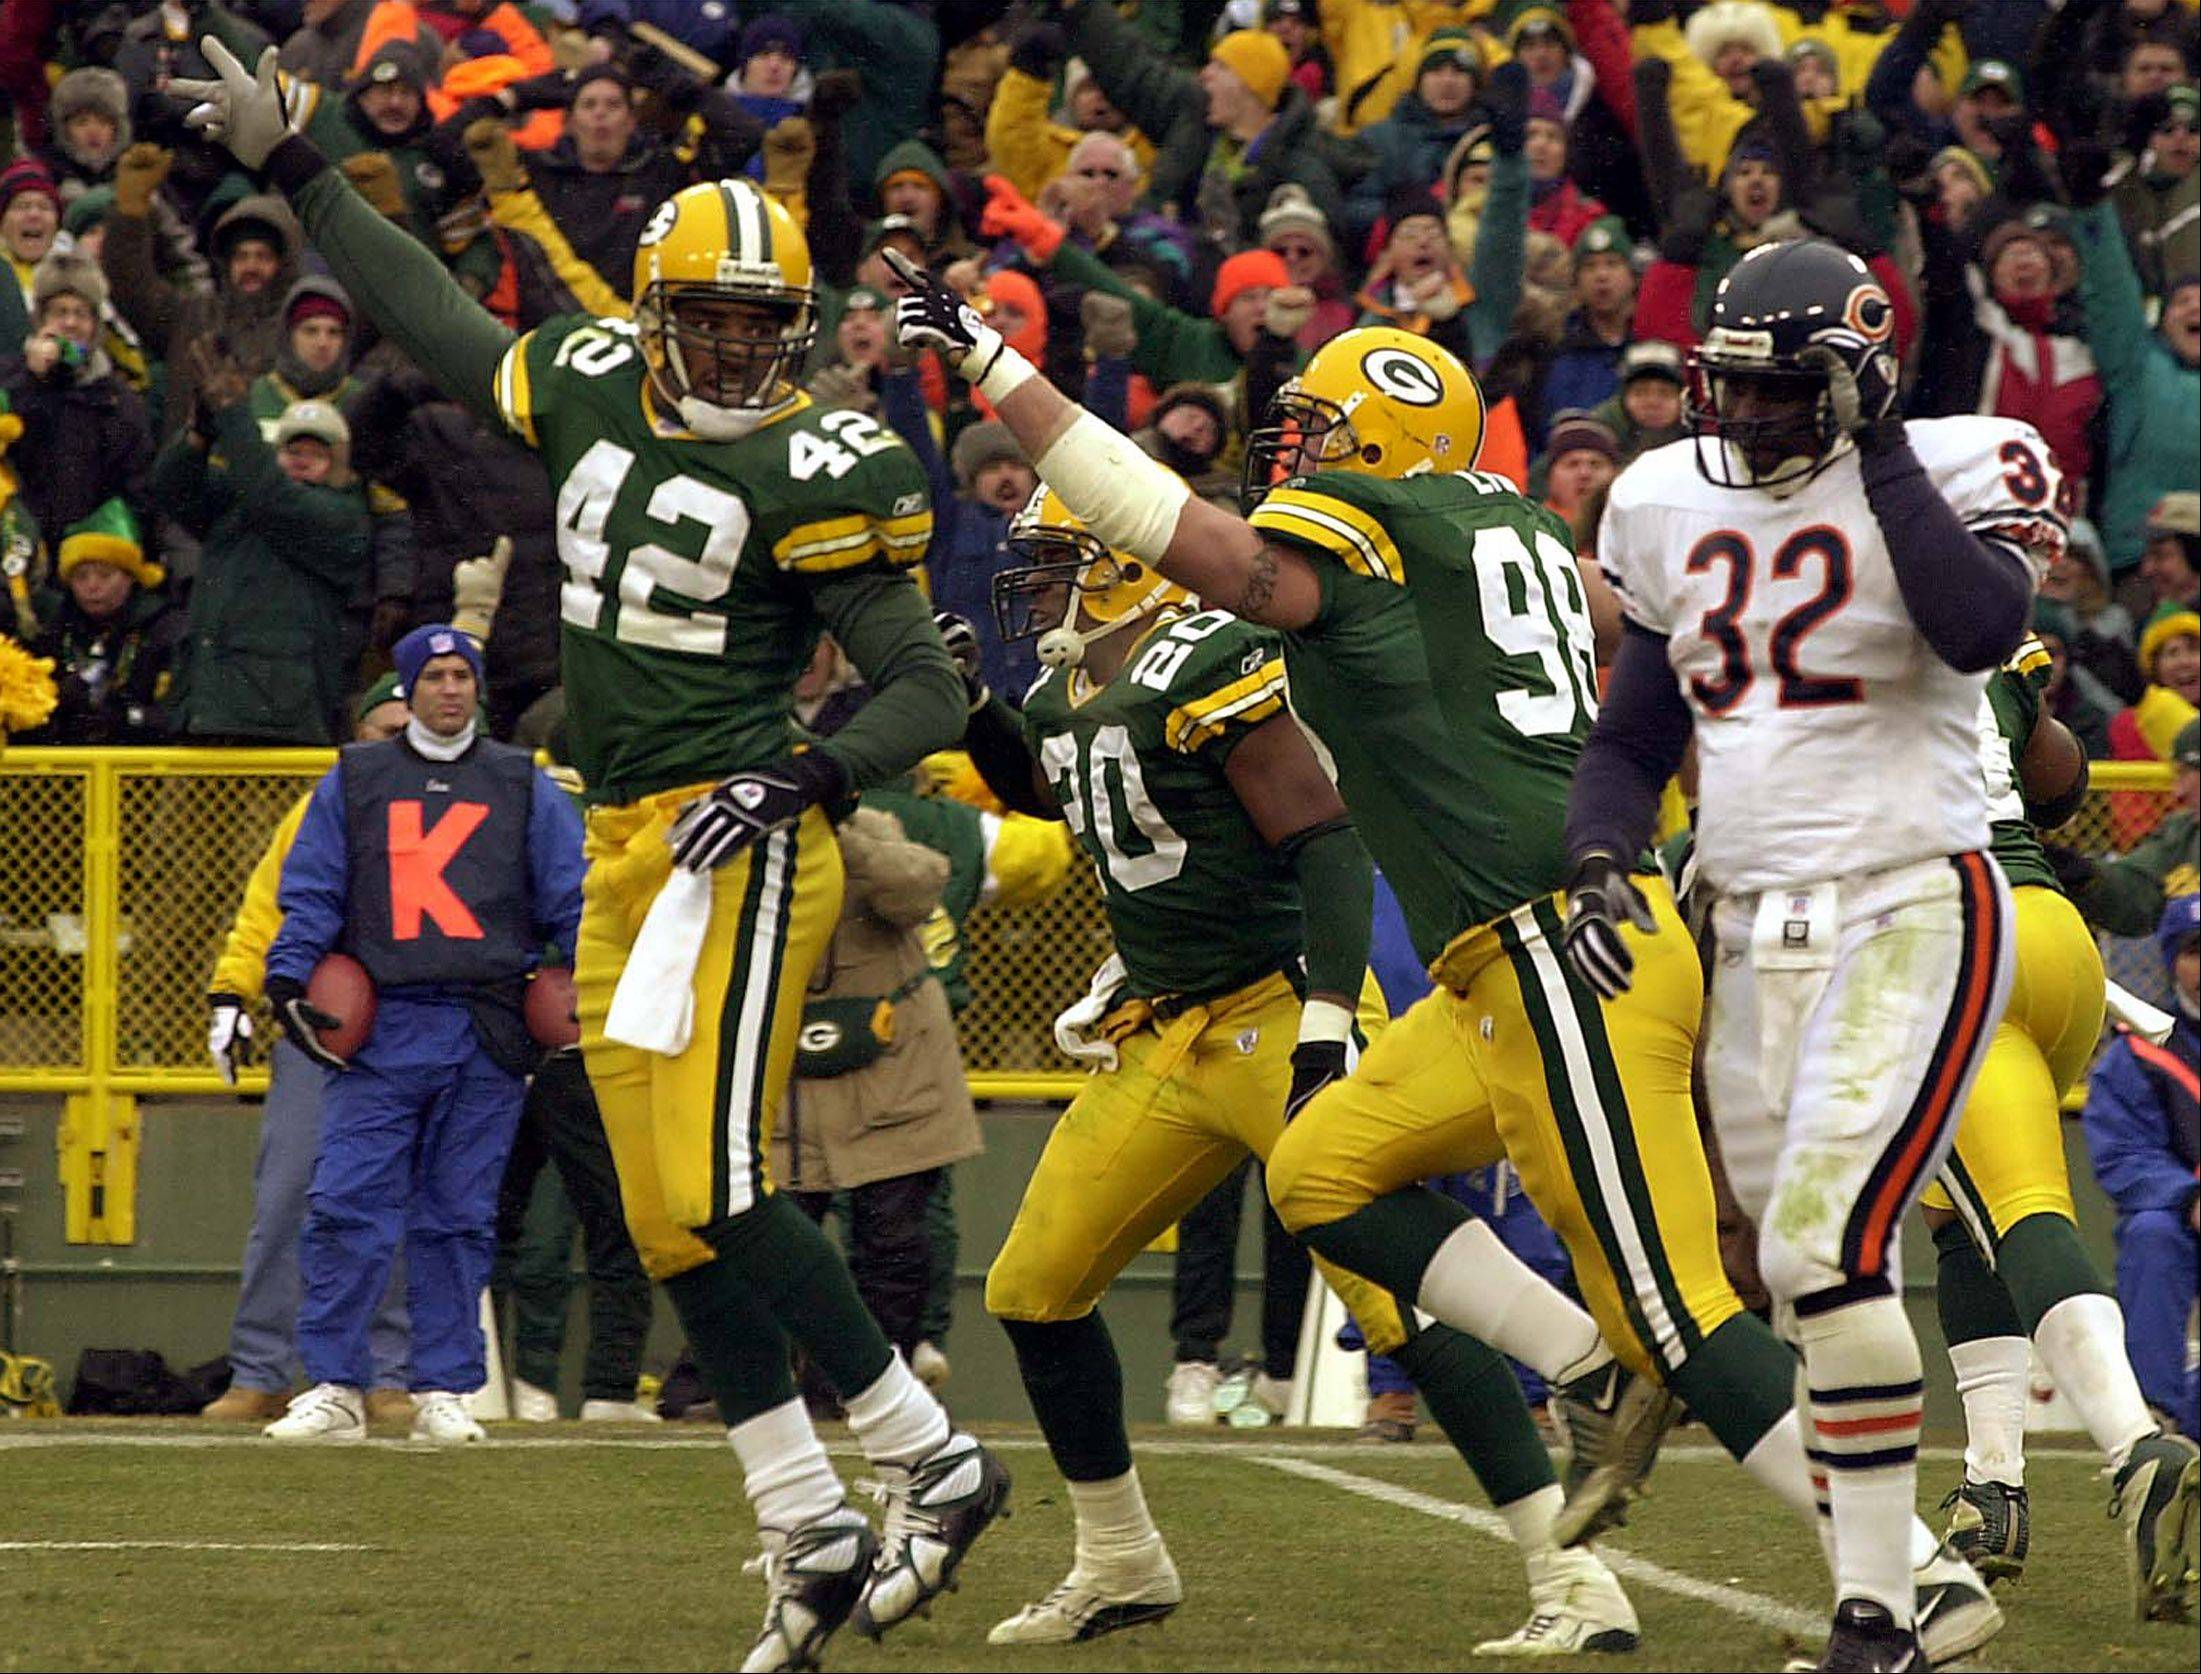 Darren Sharper, 42, celebrates as Leon Johnson walks away from a fumble as the Bears were close to scoring in this 2002 game.